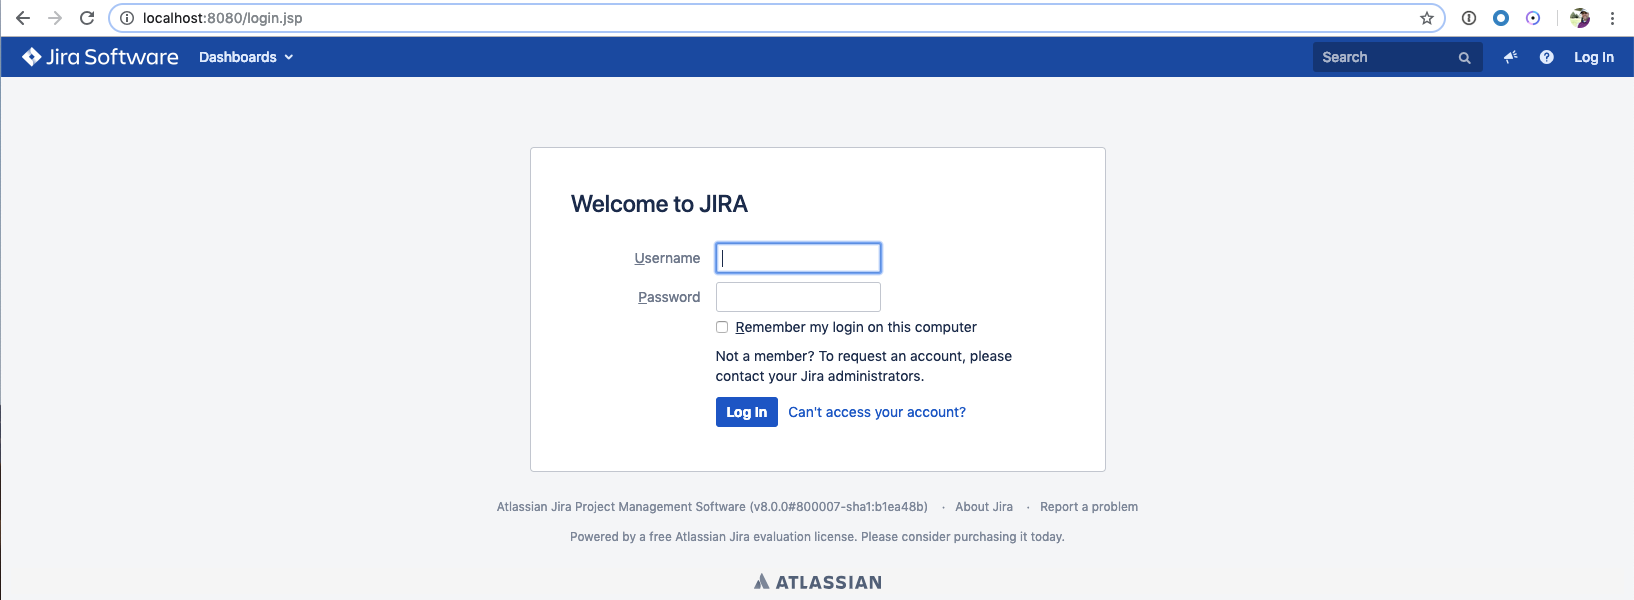 welcome-to-jira